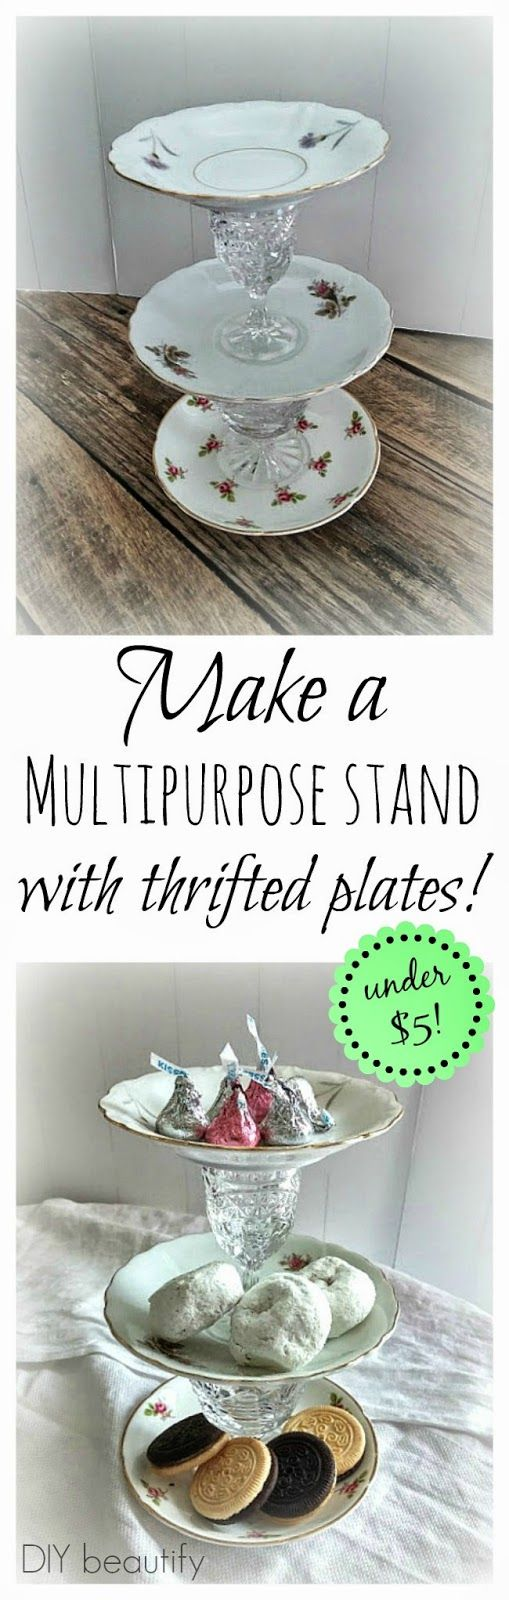 How to Make Tiered Plate Stands for Under $5 | DIY beautify